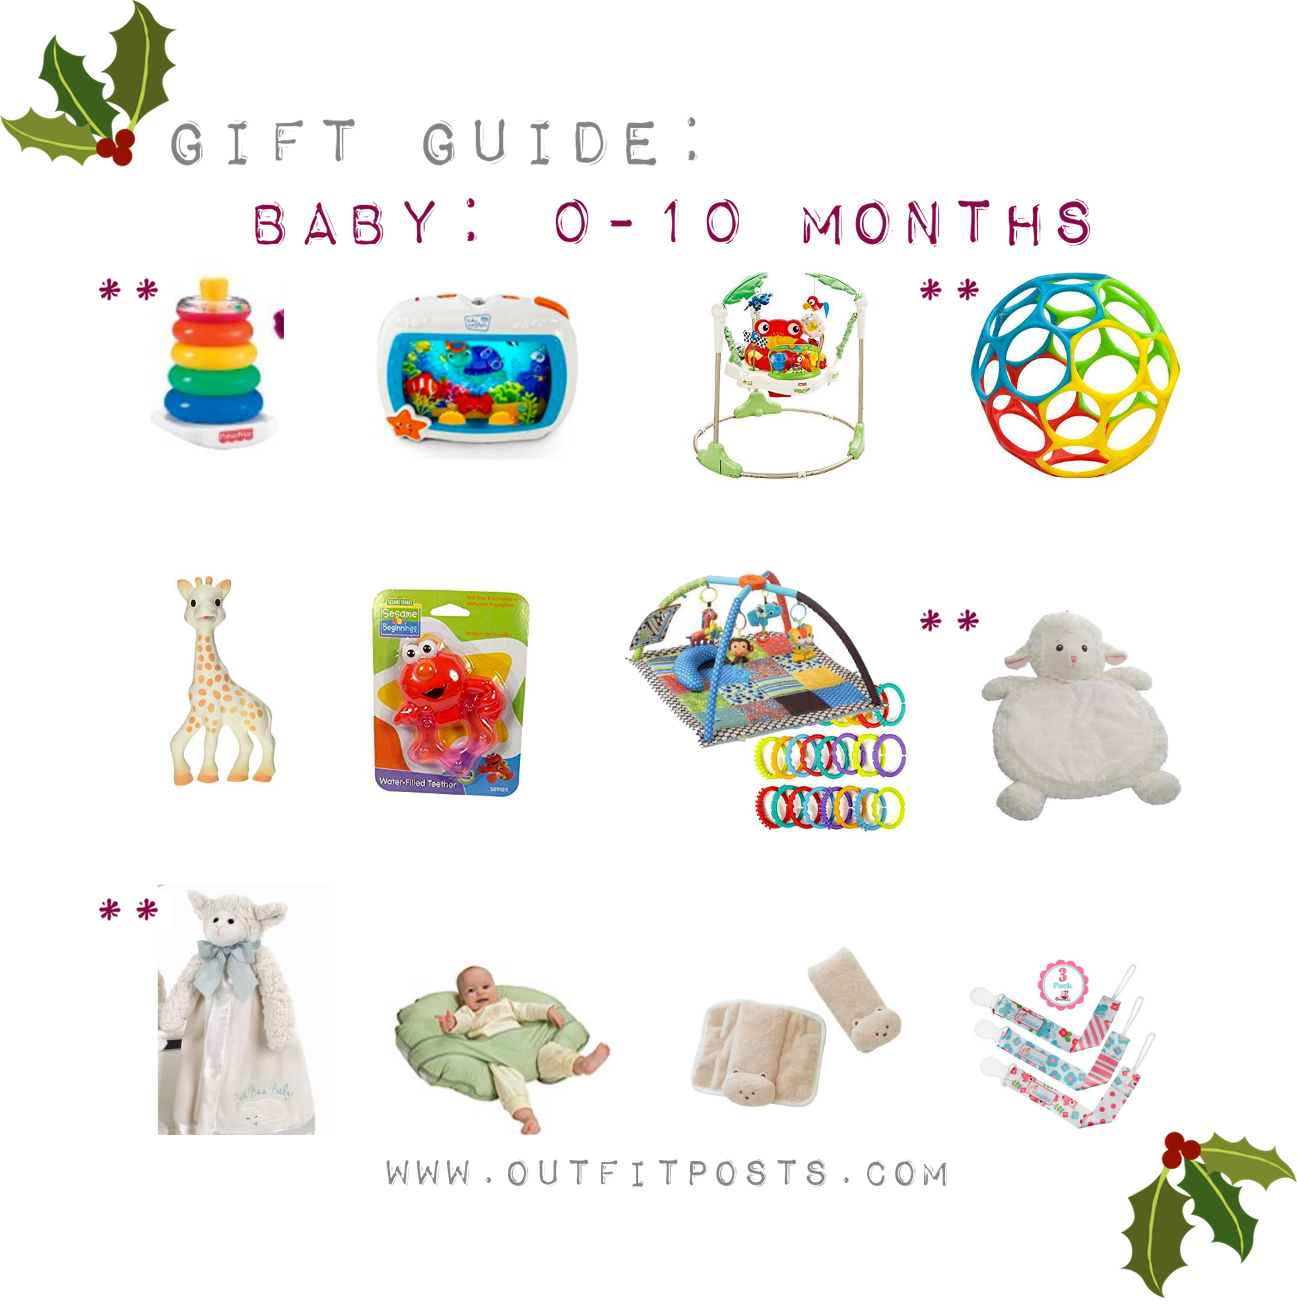 Playdough clipart plastic toy. Outfit post gift guide